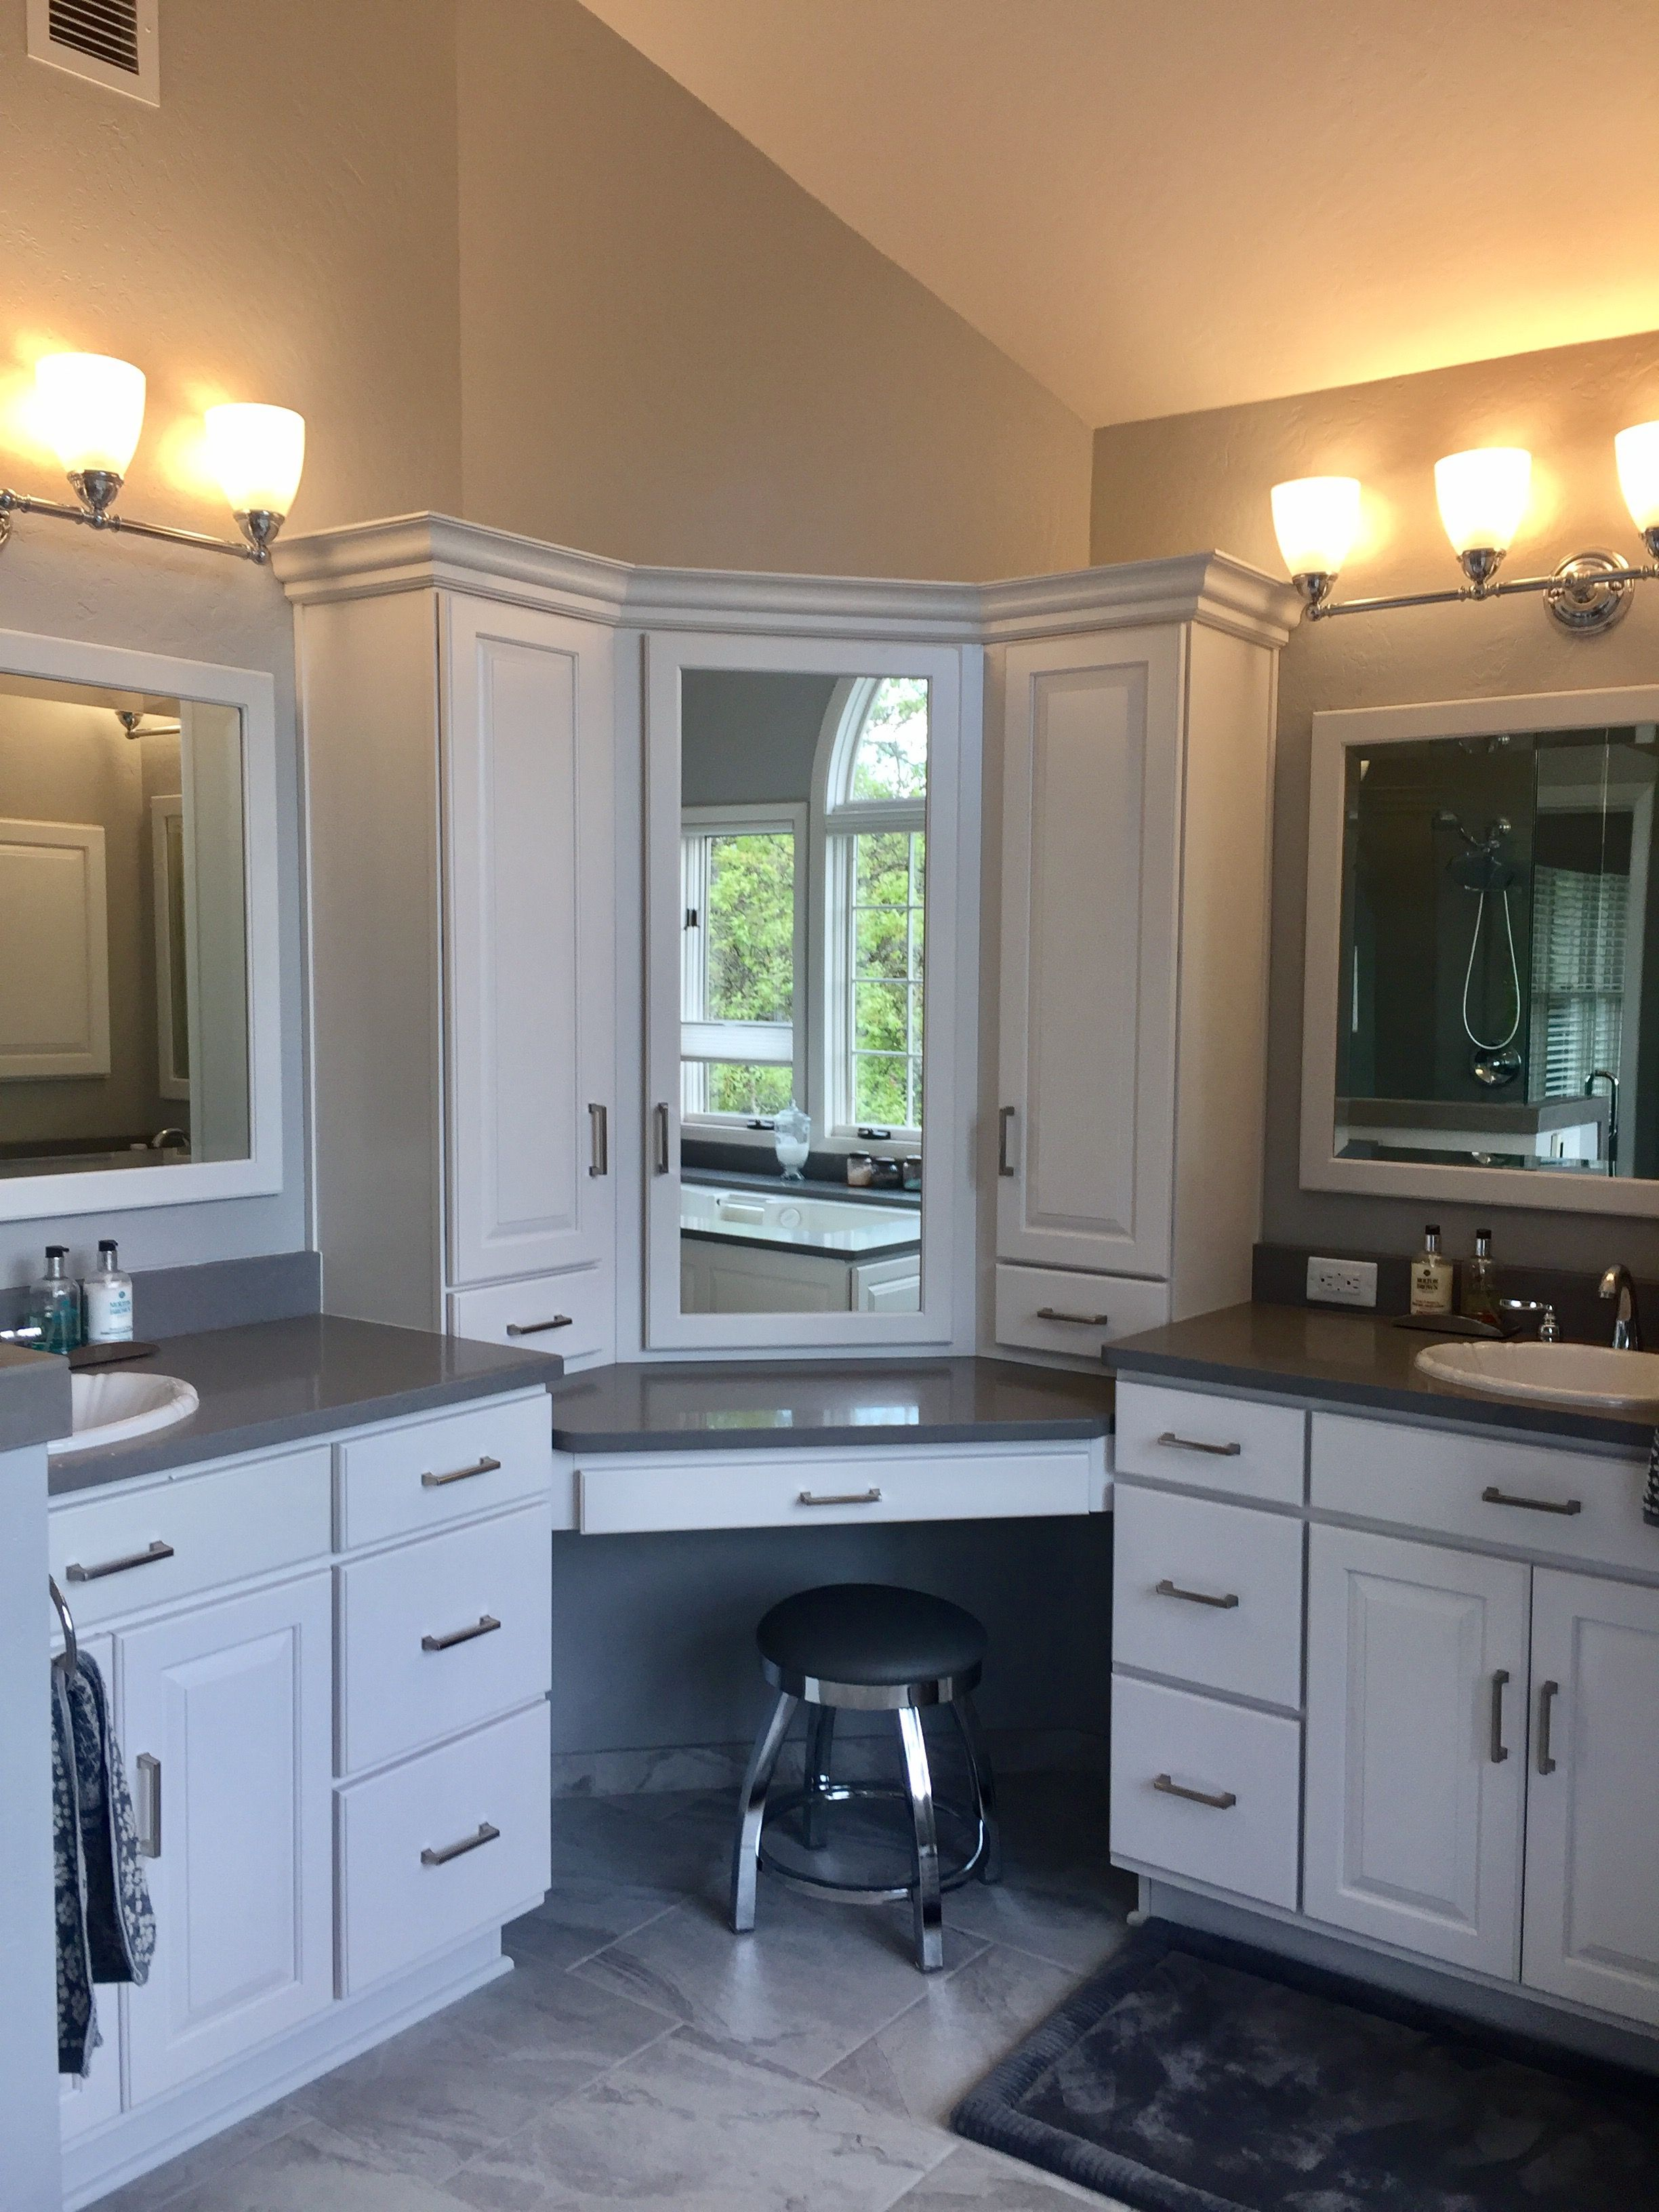 Corner vanity pebble caesarstone i designed with canyon creek cabinet distributor the bathroom and this corner vanity to hide all of my make up